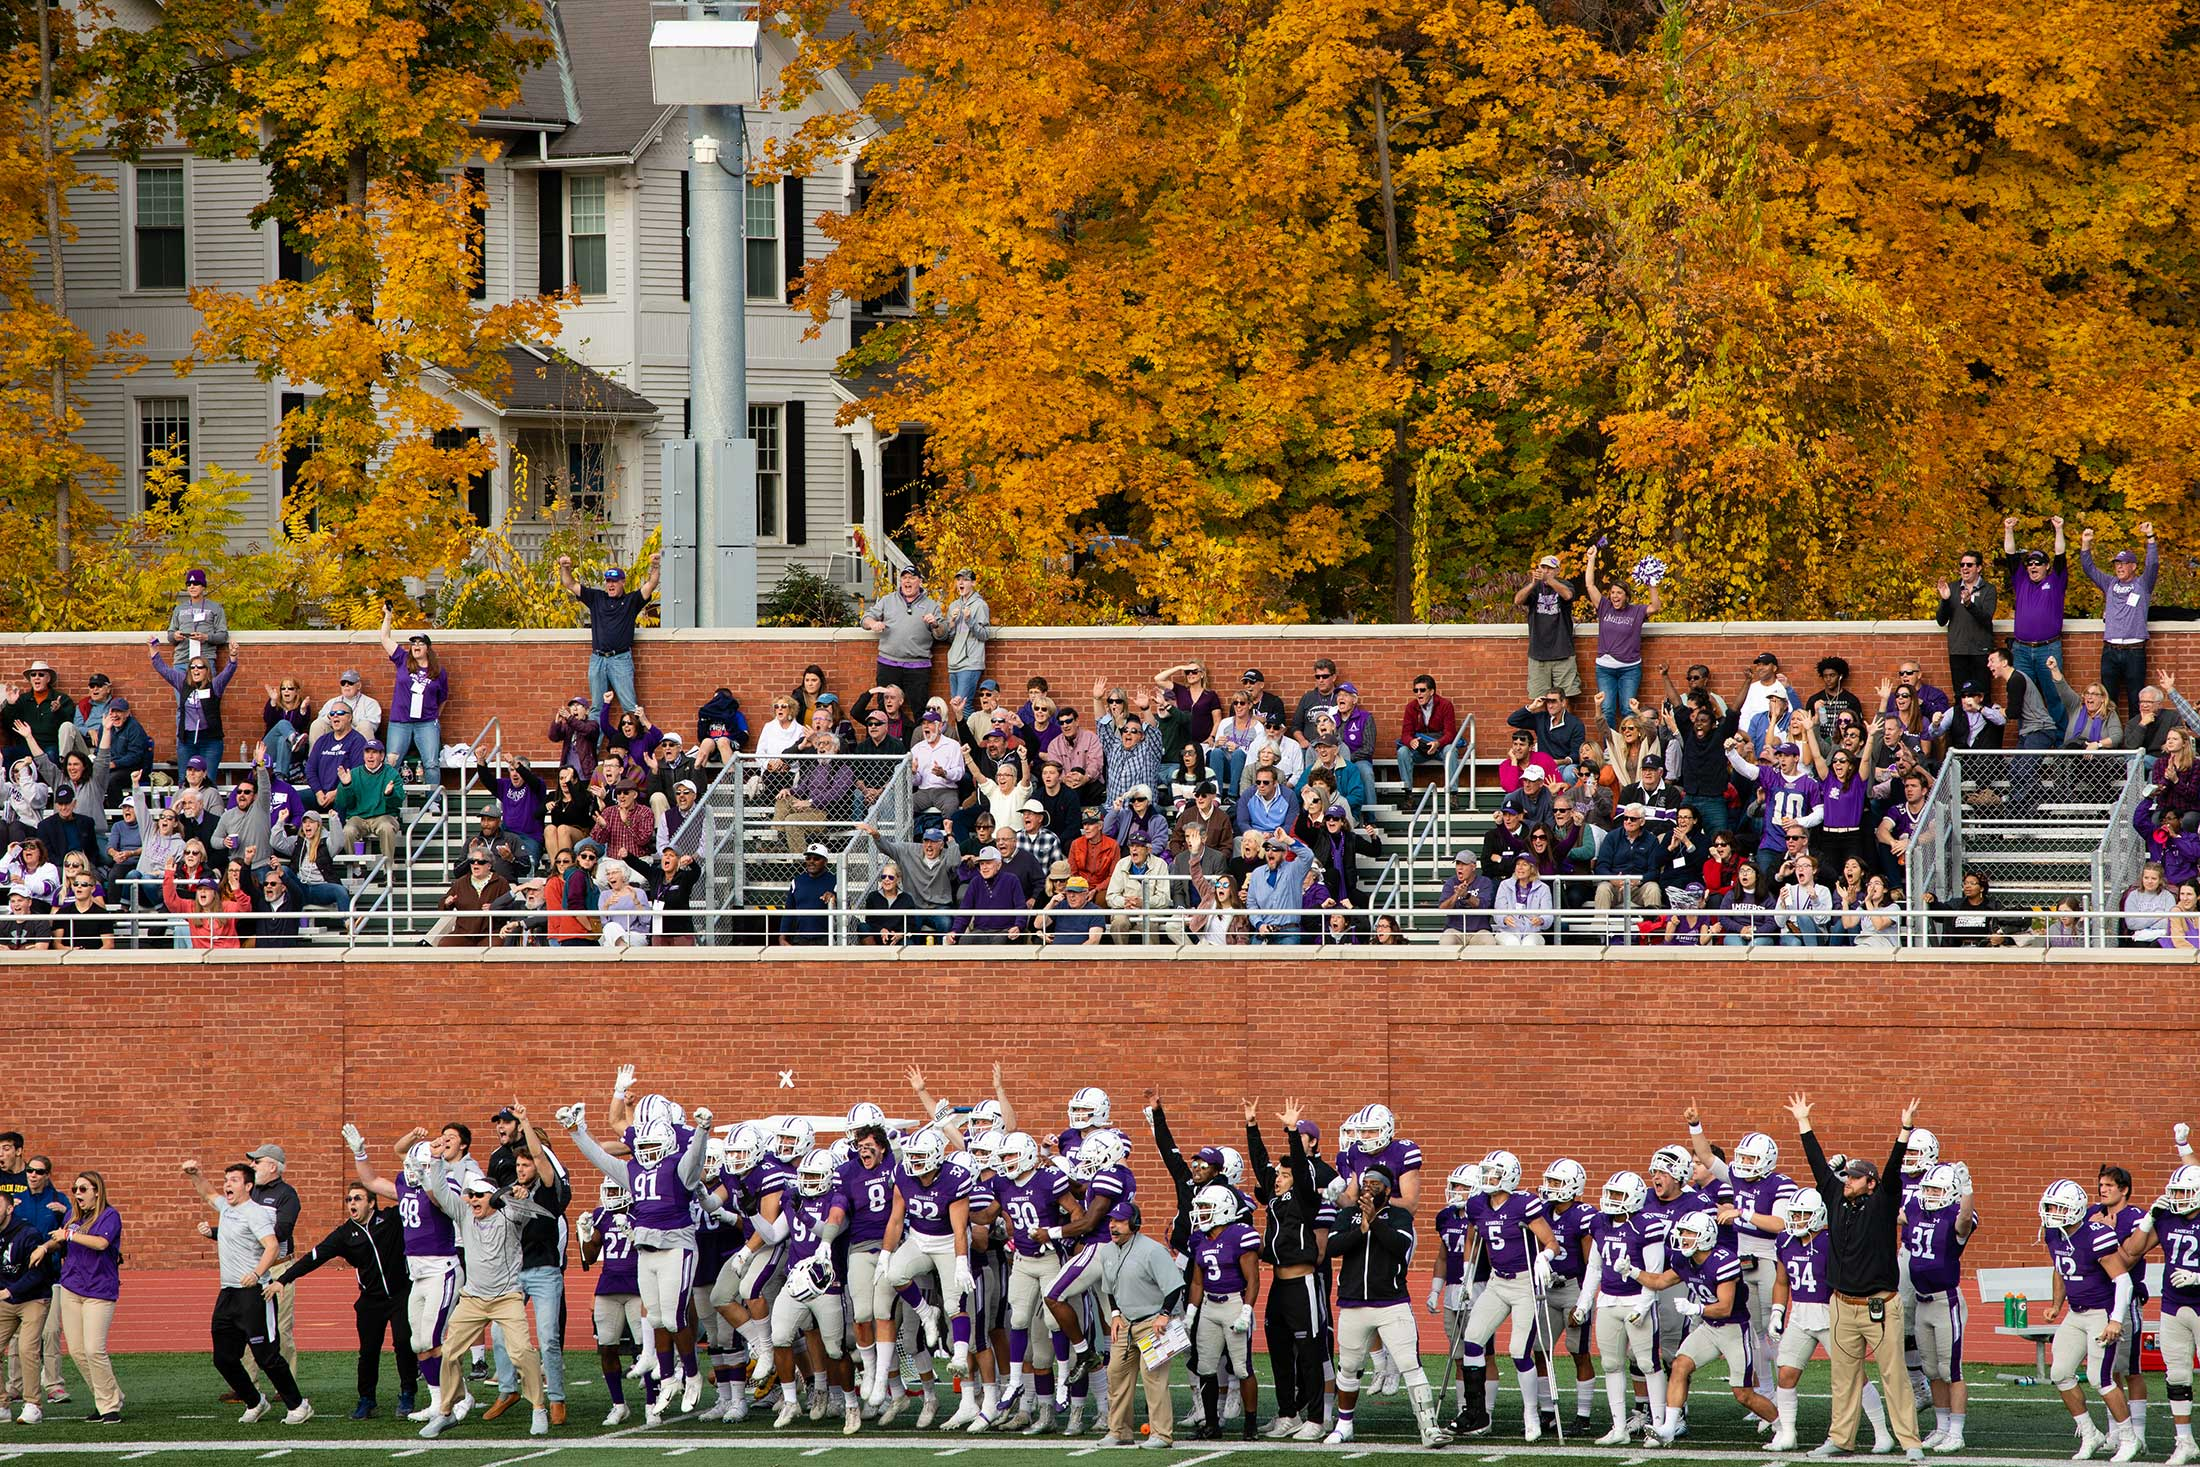 Amherst College football team and fans reacting to a play